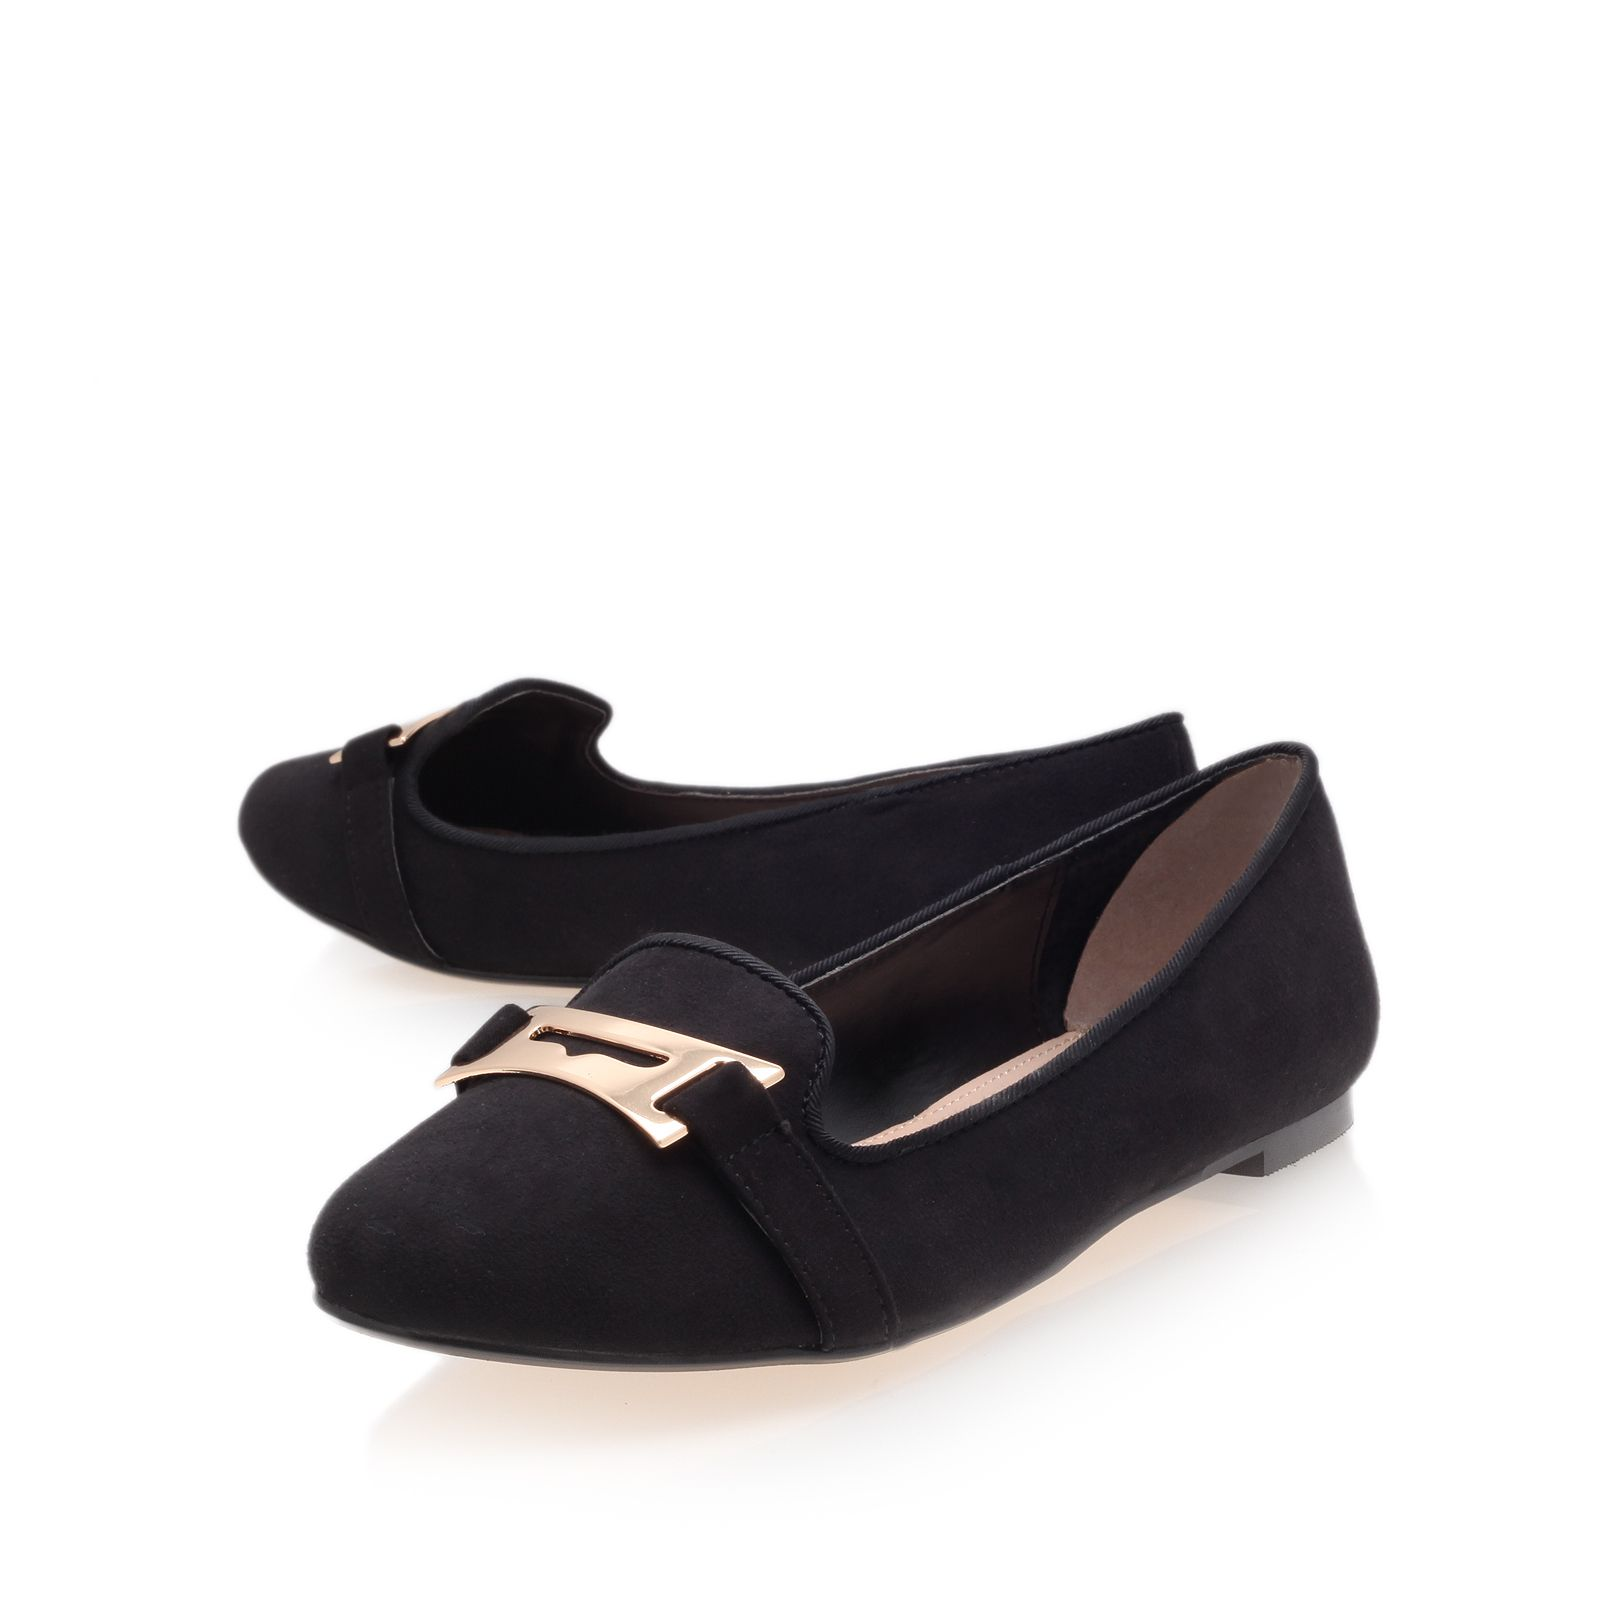 Mauve flat court shoes